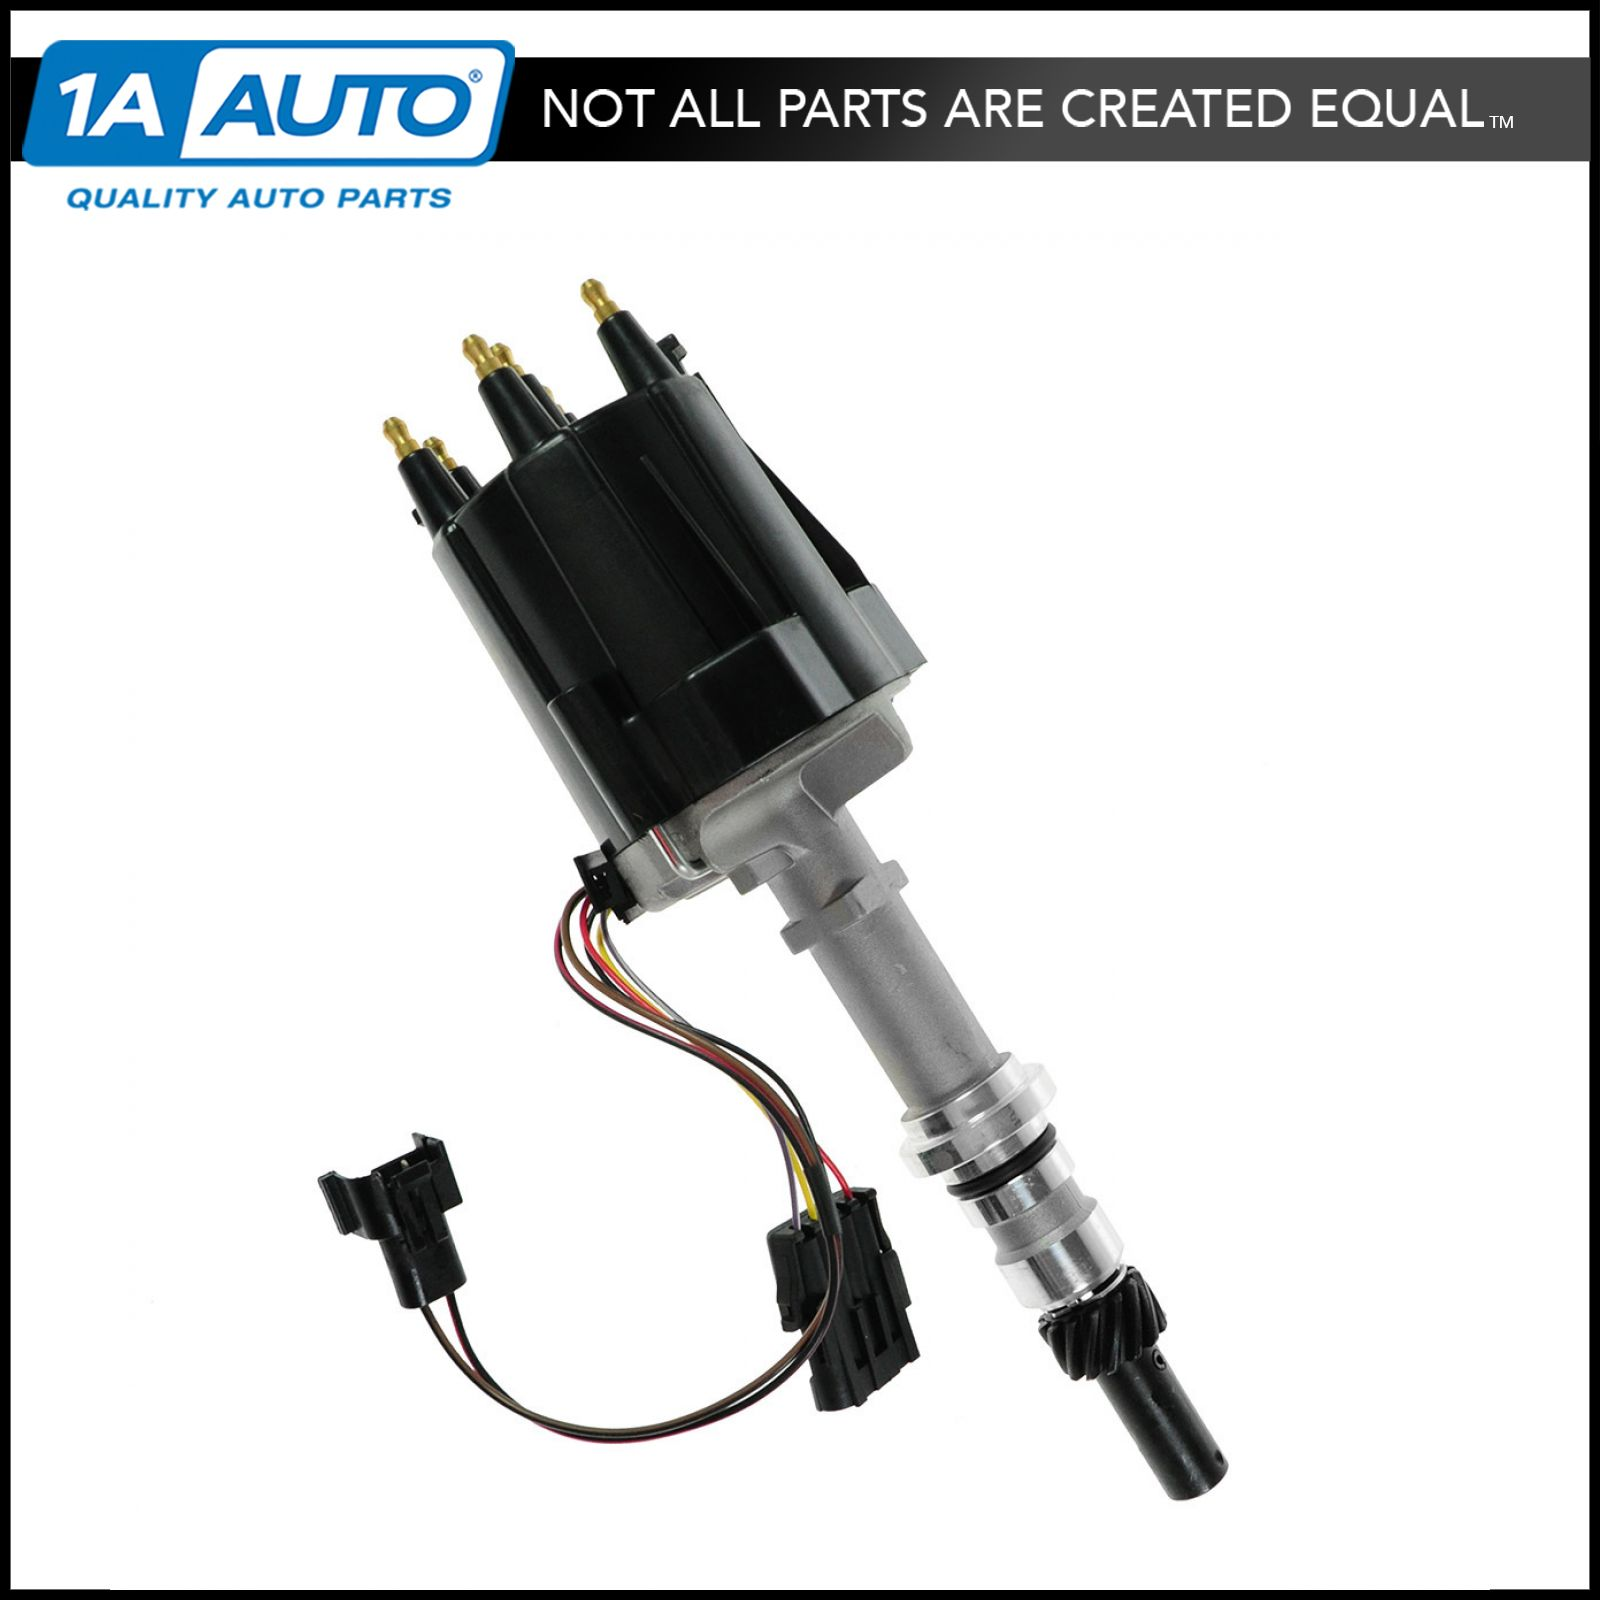 hight resolution of details about ignition distributor for 82 95 2 8l v6 s10 blazer s15 jimmy cherokee camaro